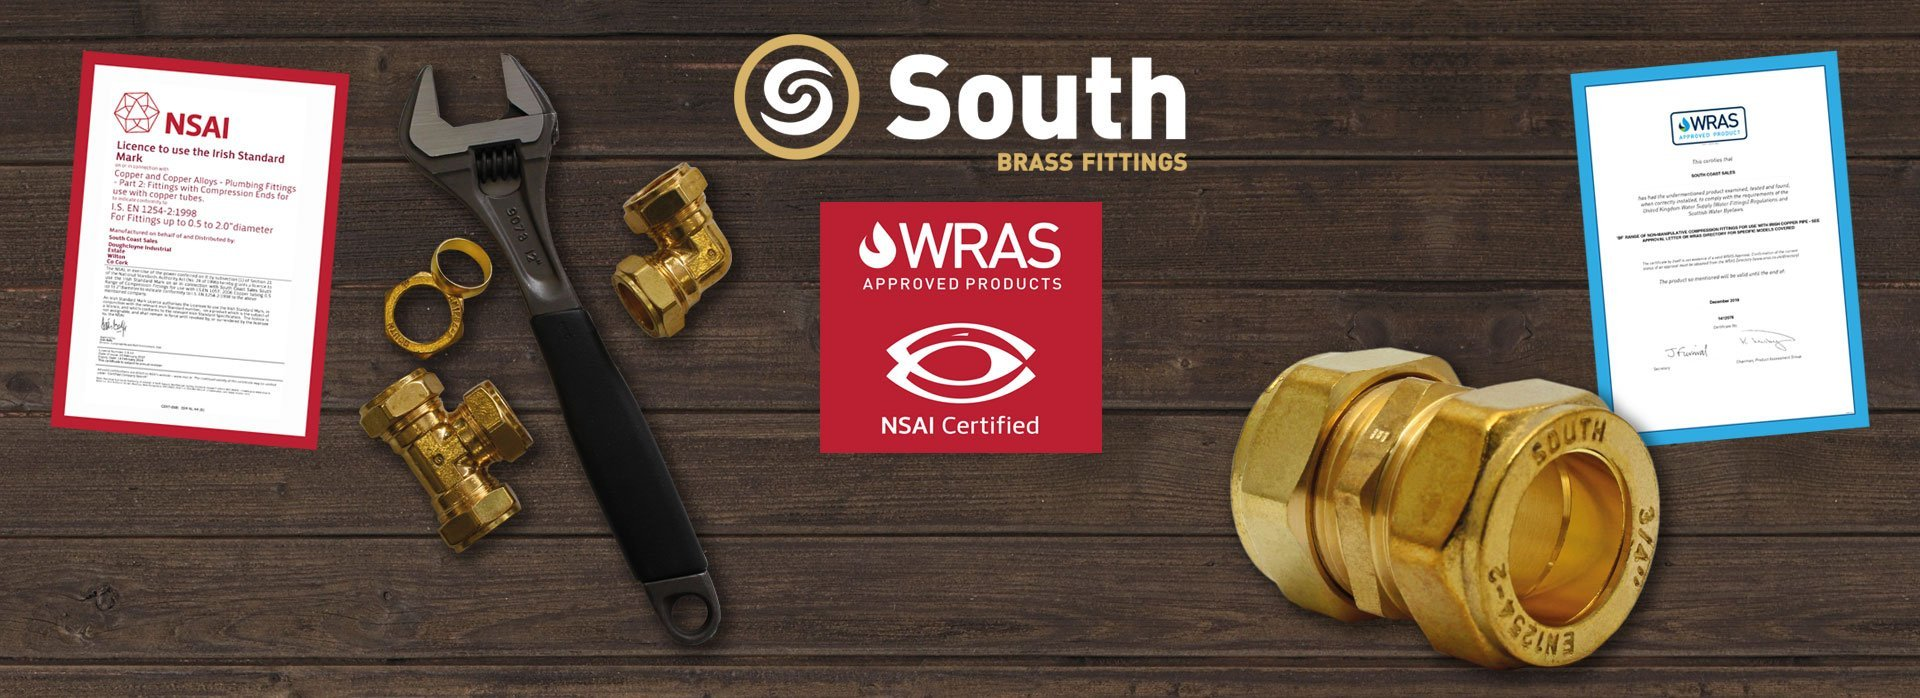 South Brass Fittings slide